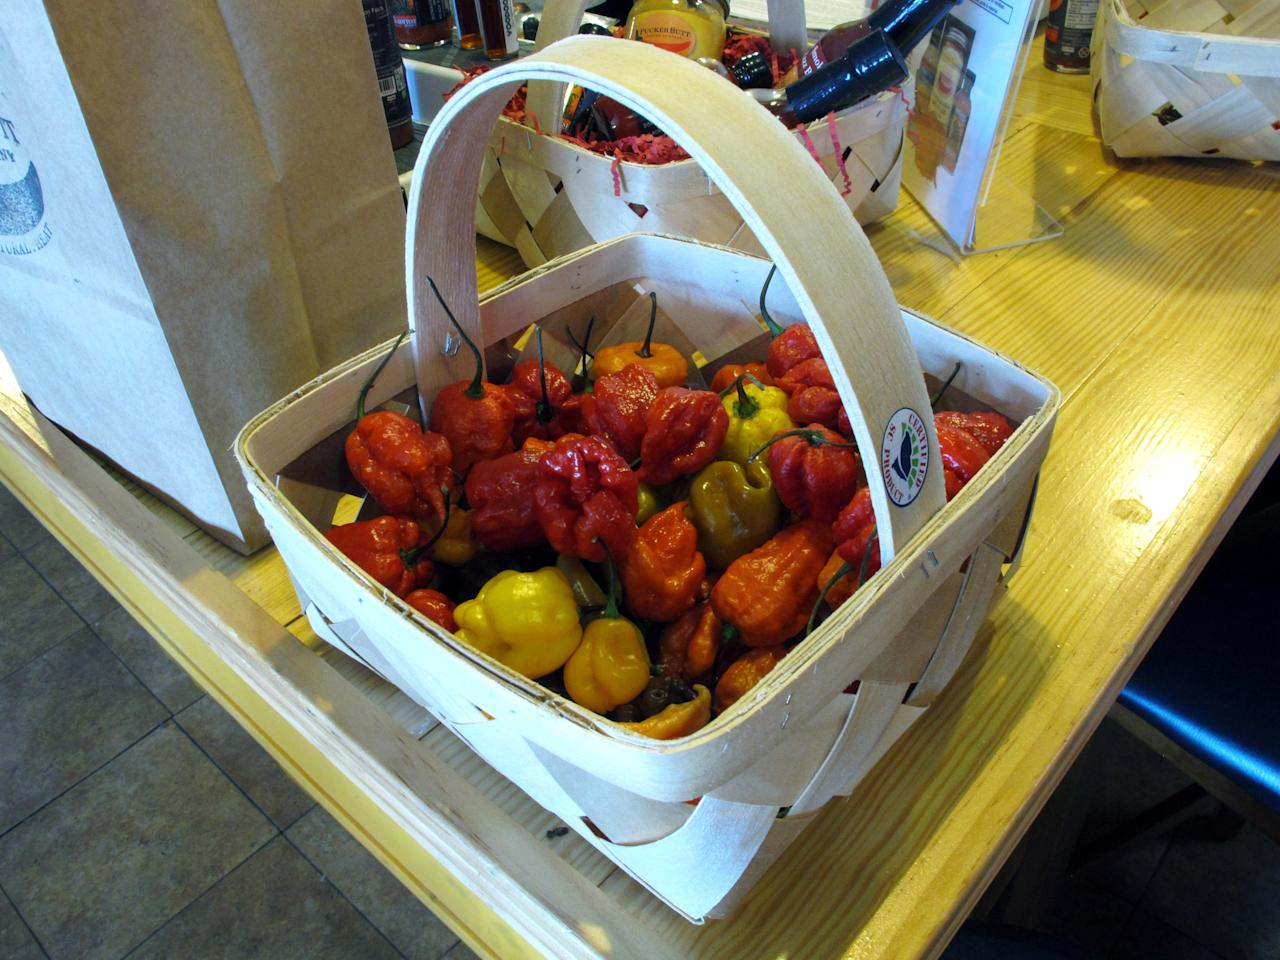 This Dec. 12, 2013 photo shows Carolina Reaper peppers at Ed Currie's store in Fort Mill, S.C. Last month, the Guinness Book of World Records decided Currie's peppers were the hottest on Earth, ending a more than four-year drive to prove no one grows a more scorching chili. (AP Photo/Jeffrey Collins)